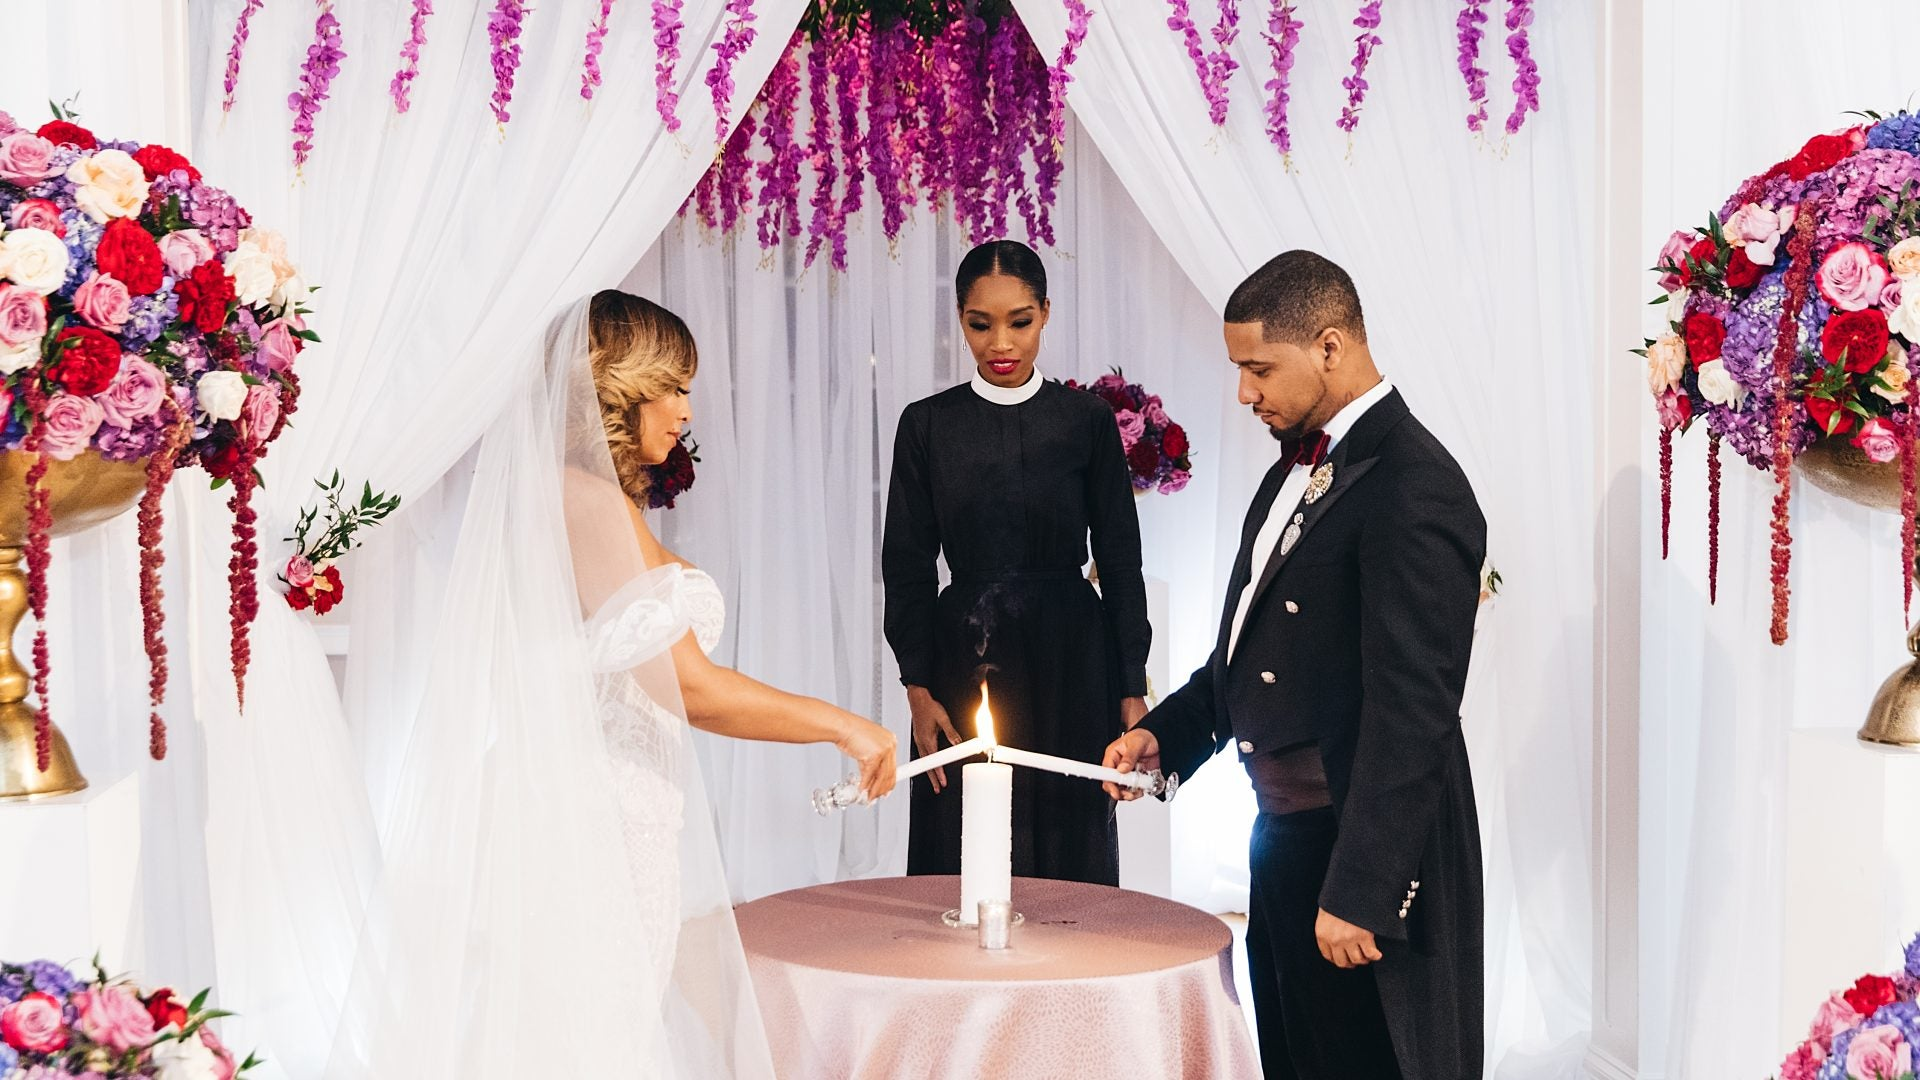 Celebrity Wedding Officiant Is The Marriage Counselor You Need